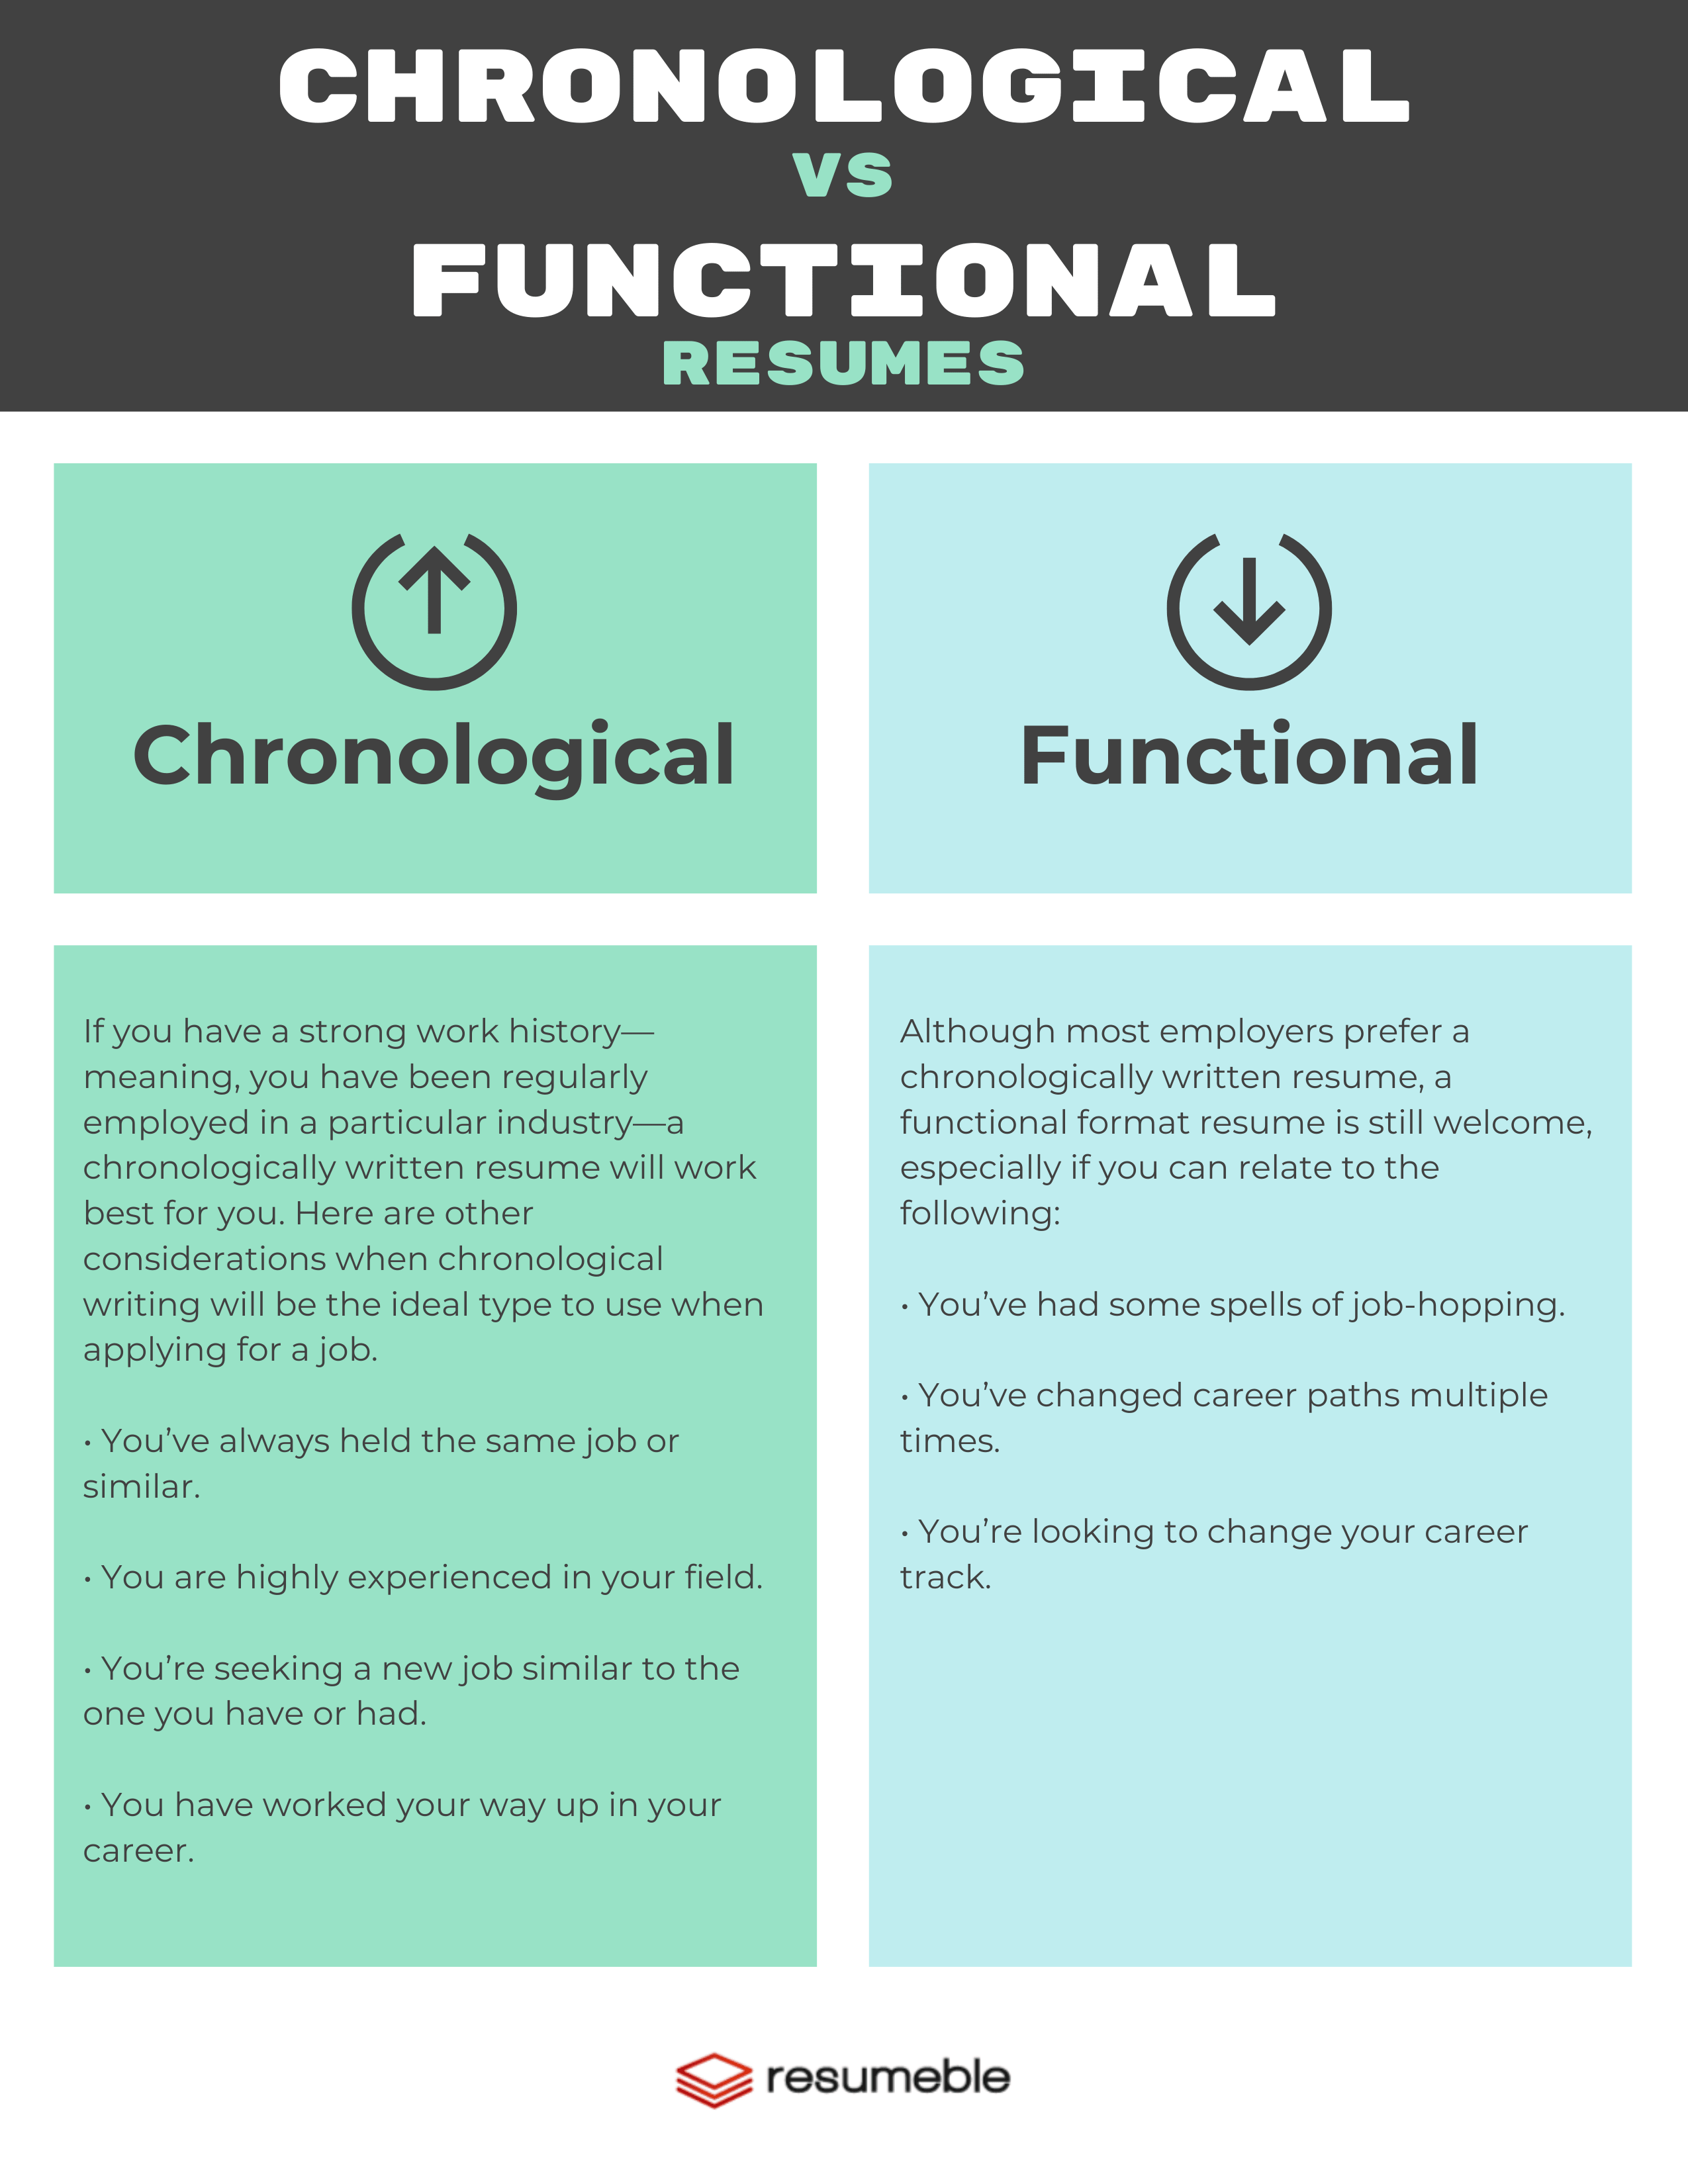 Chronological vs Functional Resumes